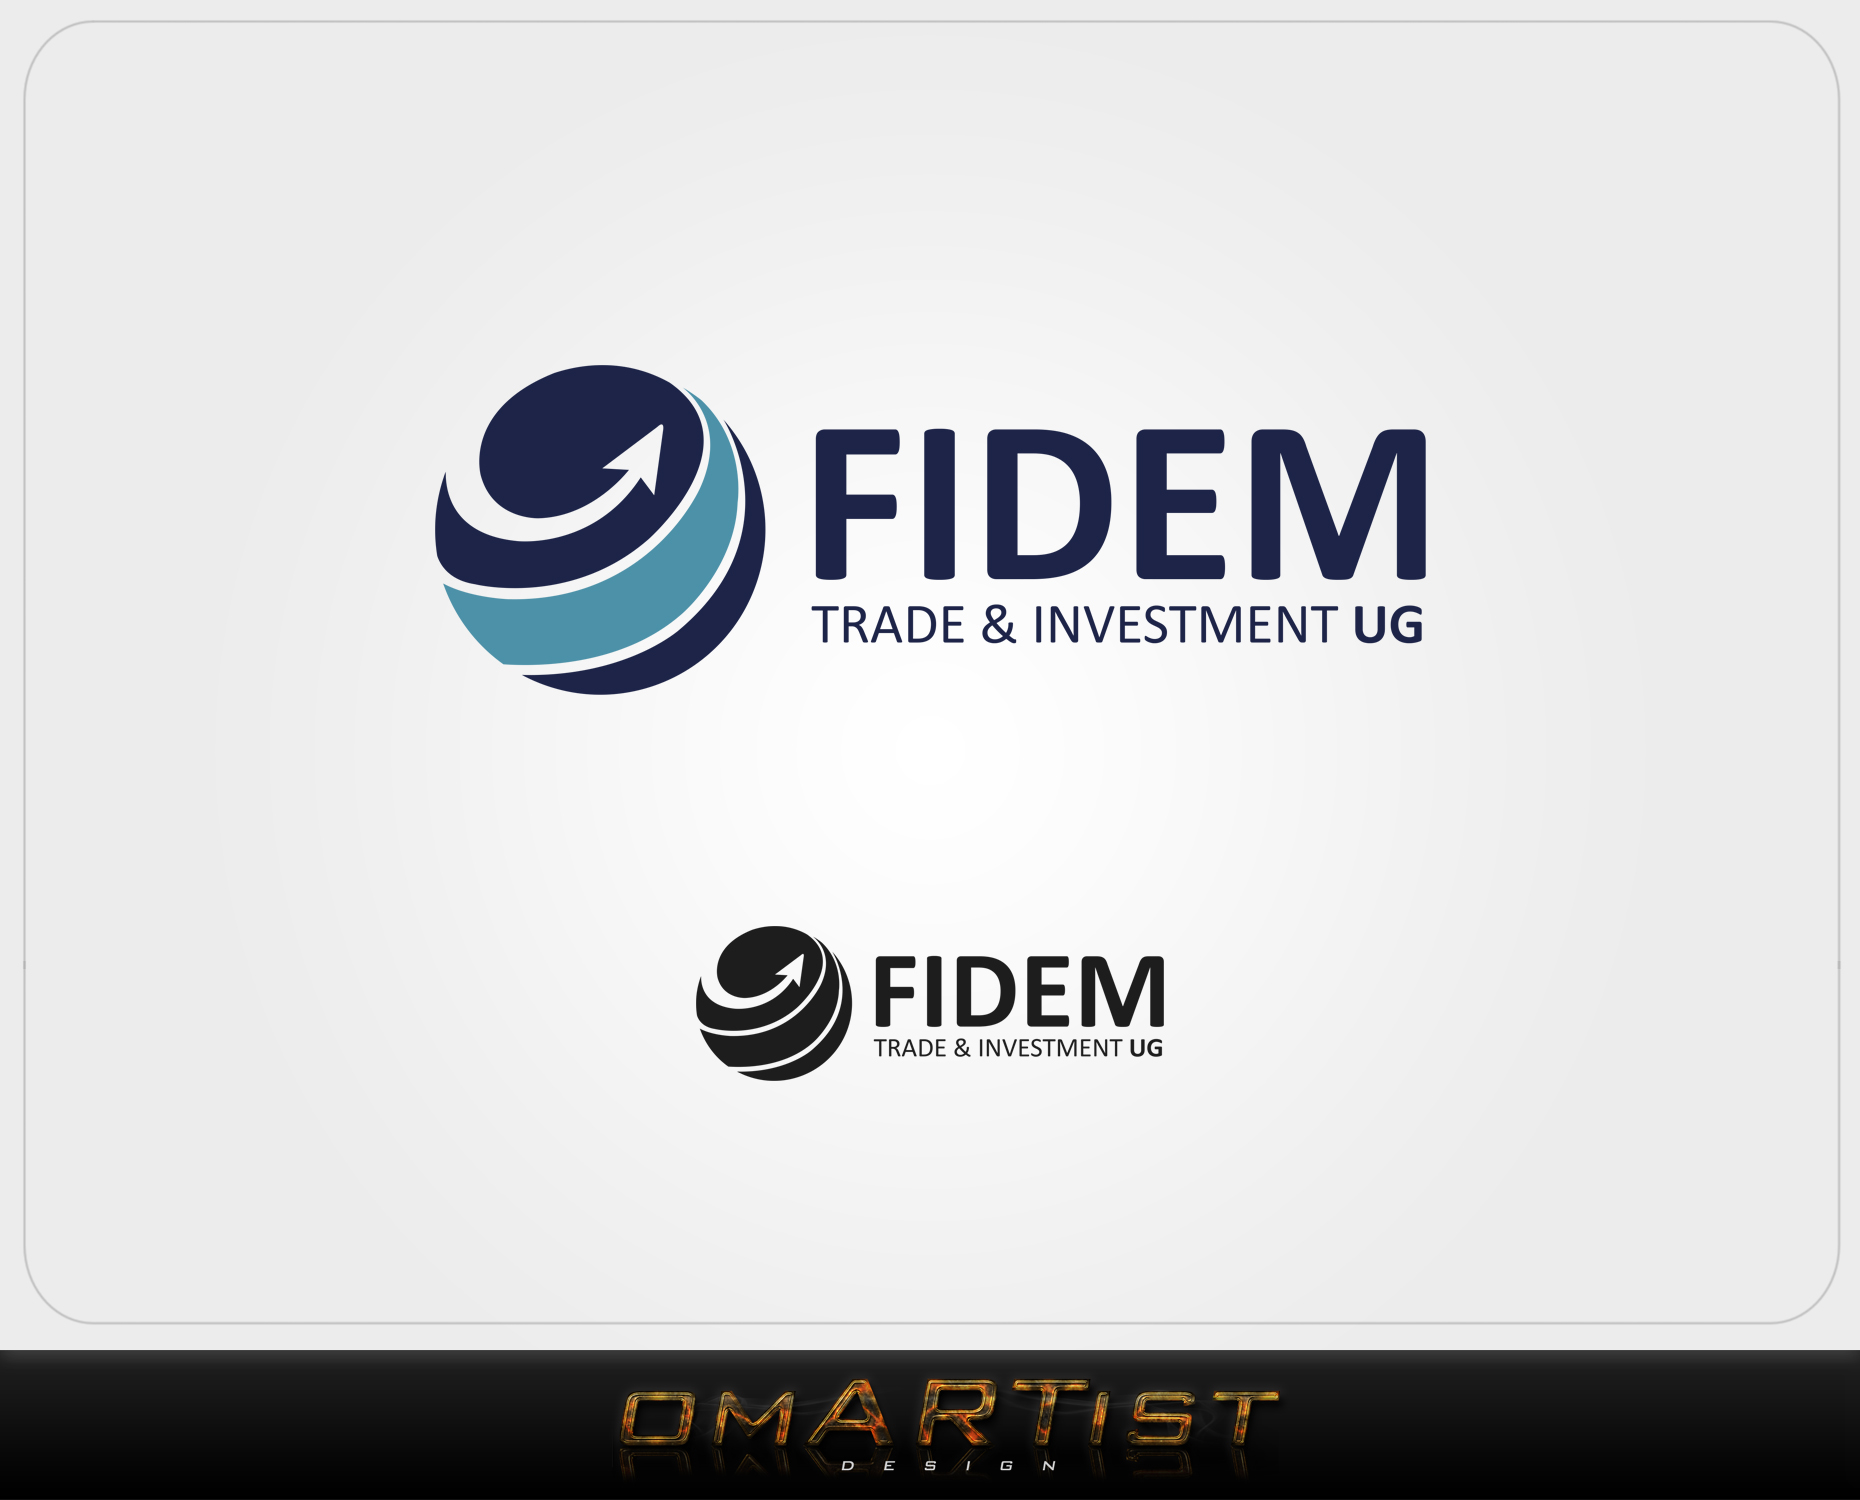 Logo Design by omARTist - Entry No. 444 in the Logo Design Contest Professional Logo Design for FIDEM Trade & Invest UG.